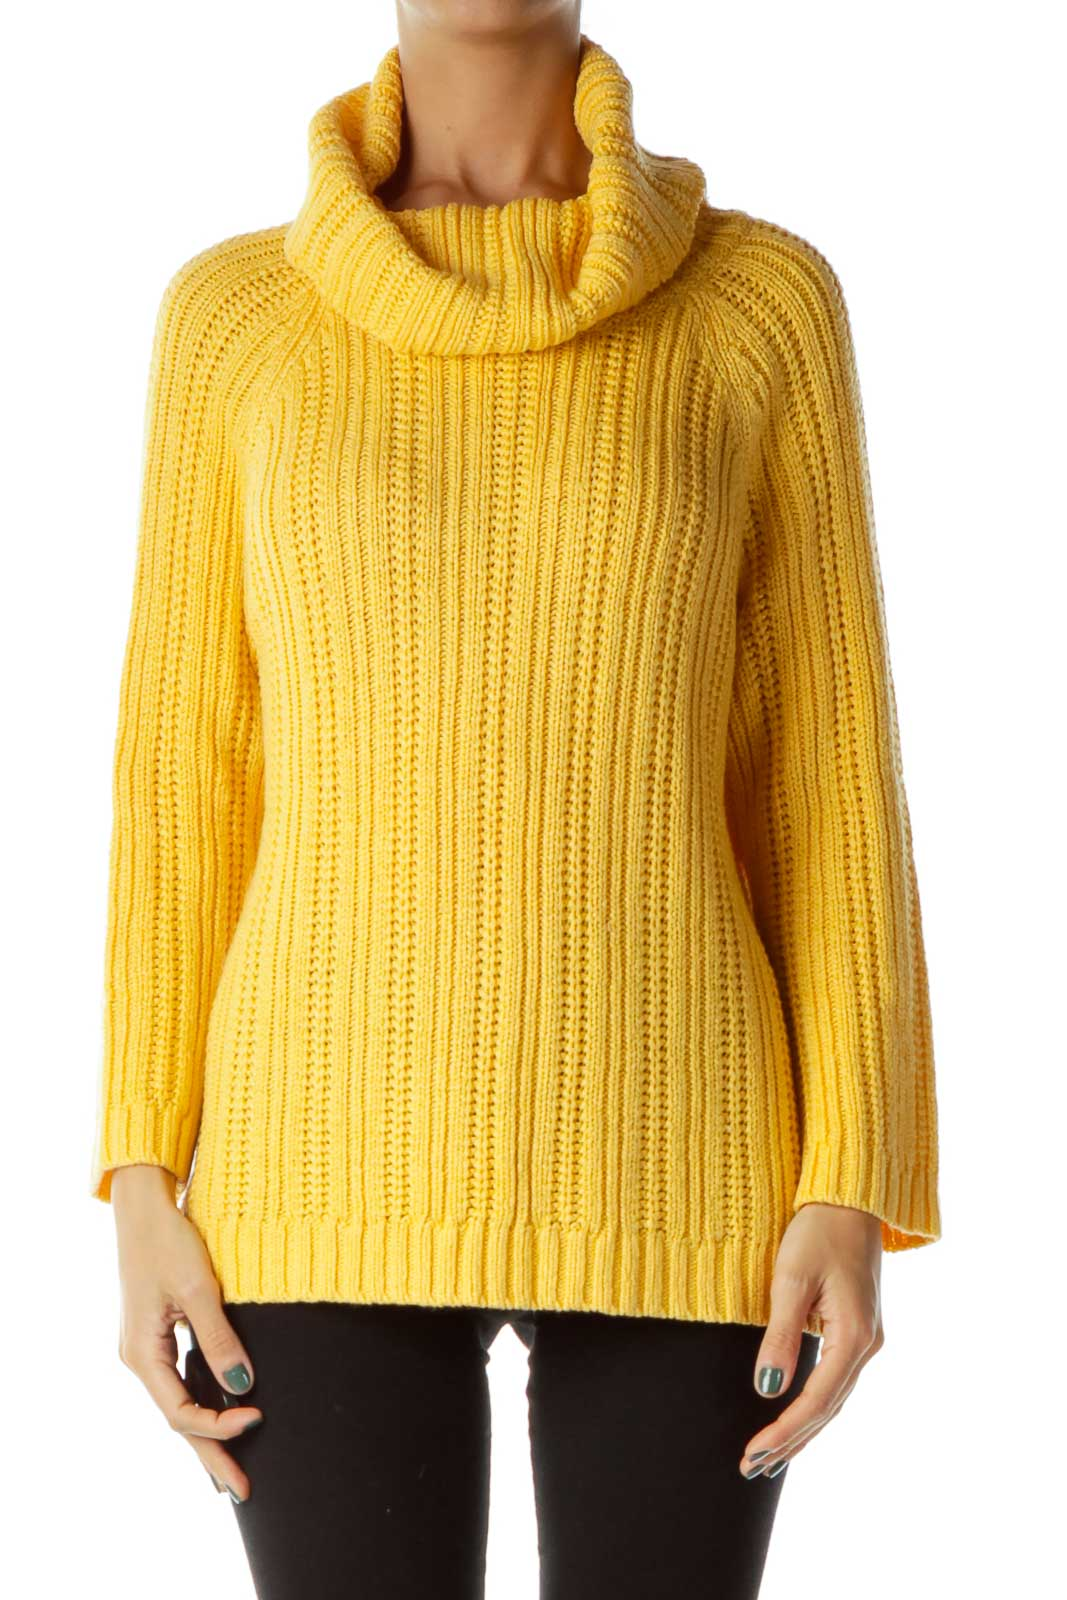 Yellow Knit Turtle Neck Sweater